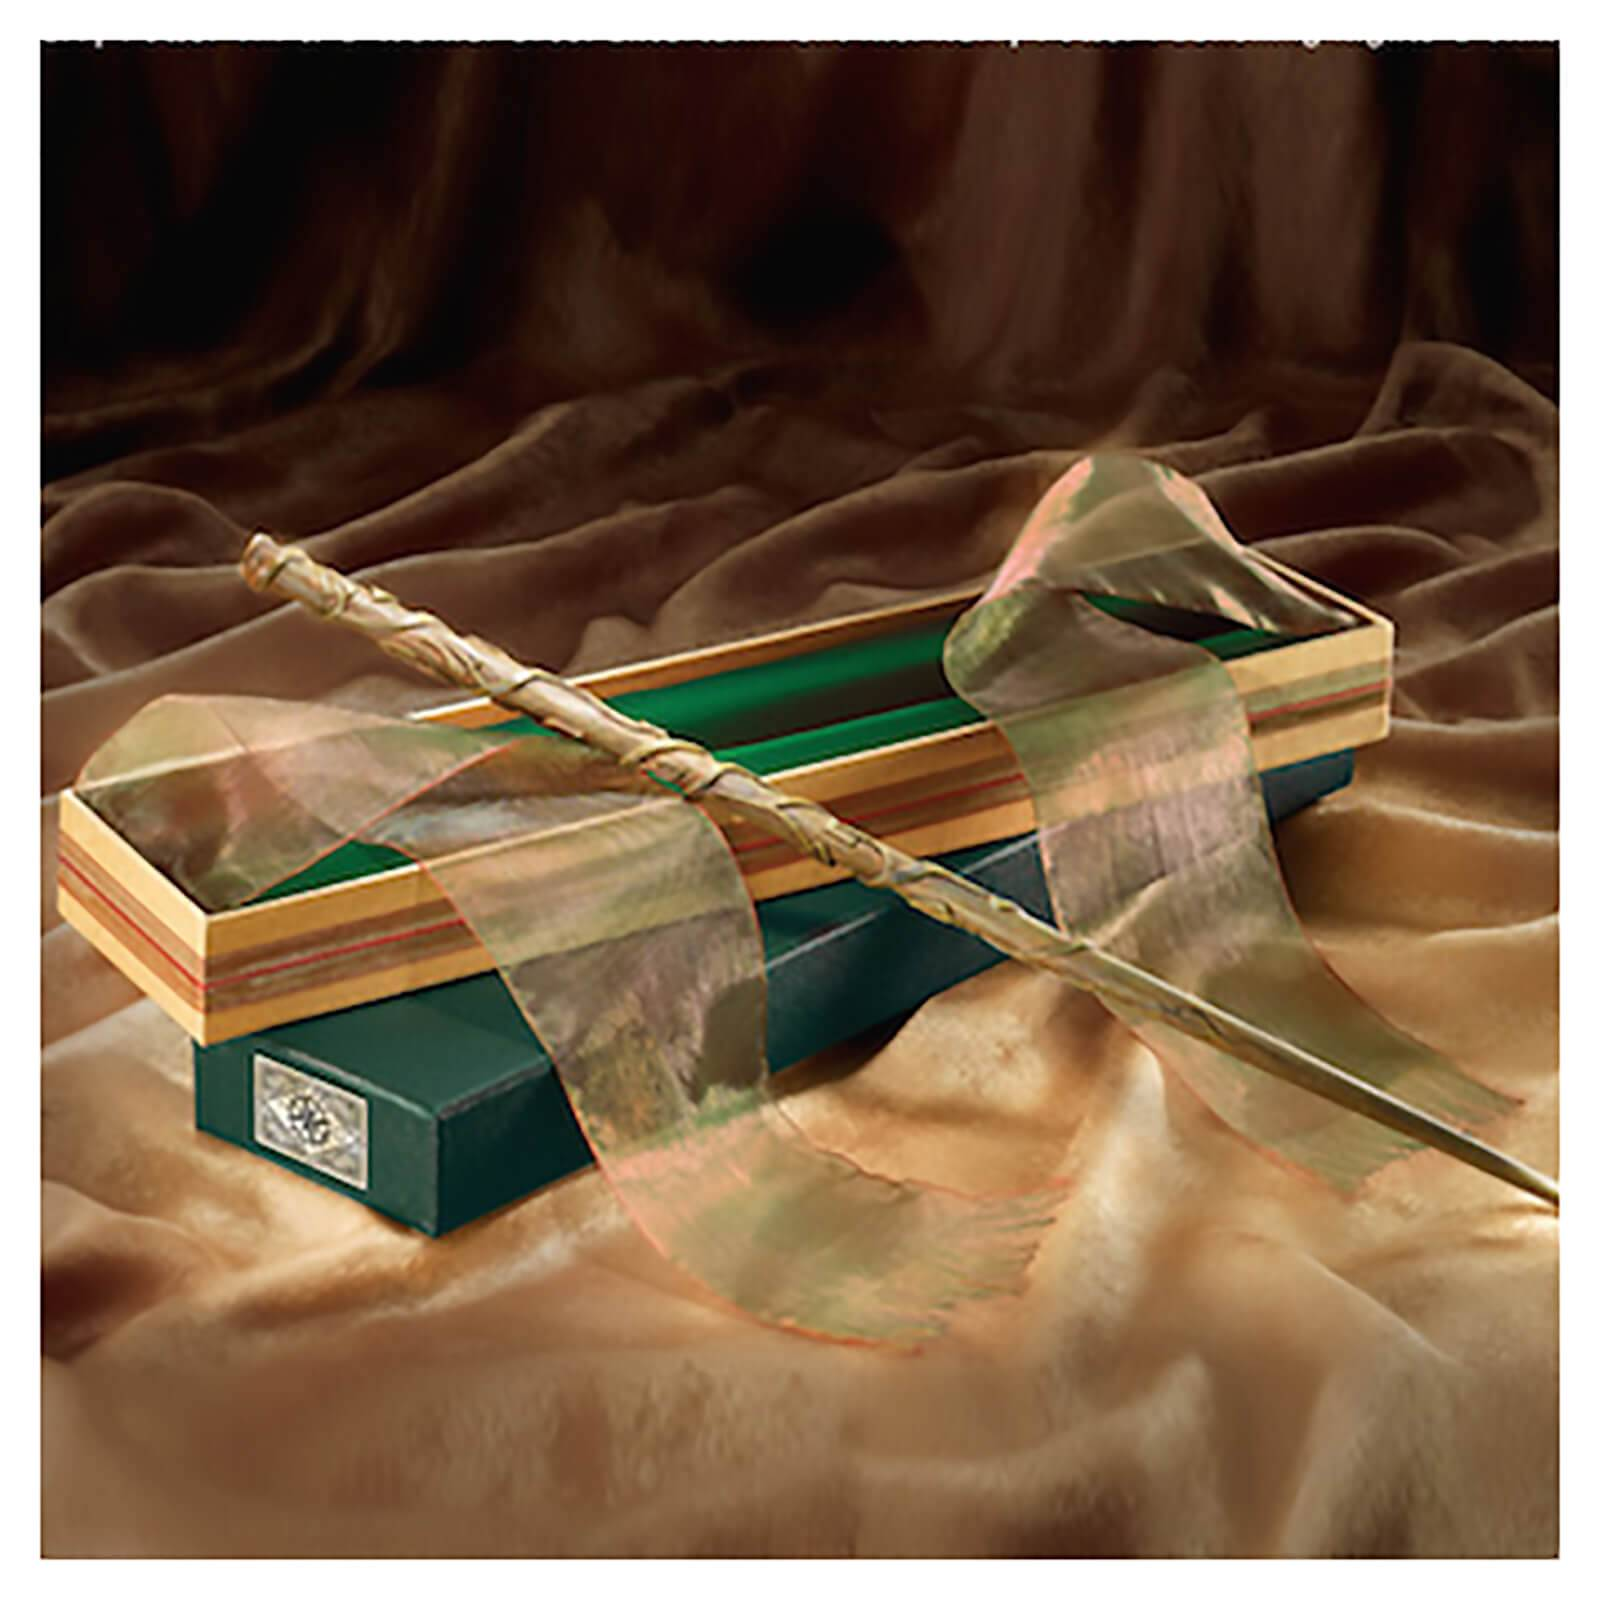 Noble Collection Harry Potter Hermione Granger's Wand in Ollivander's Box